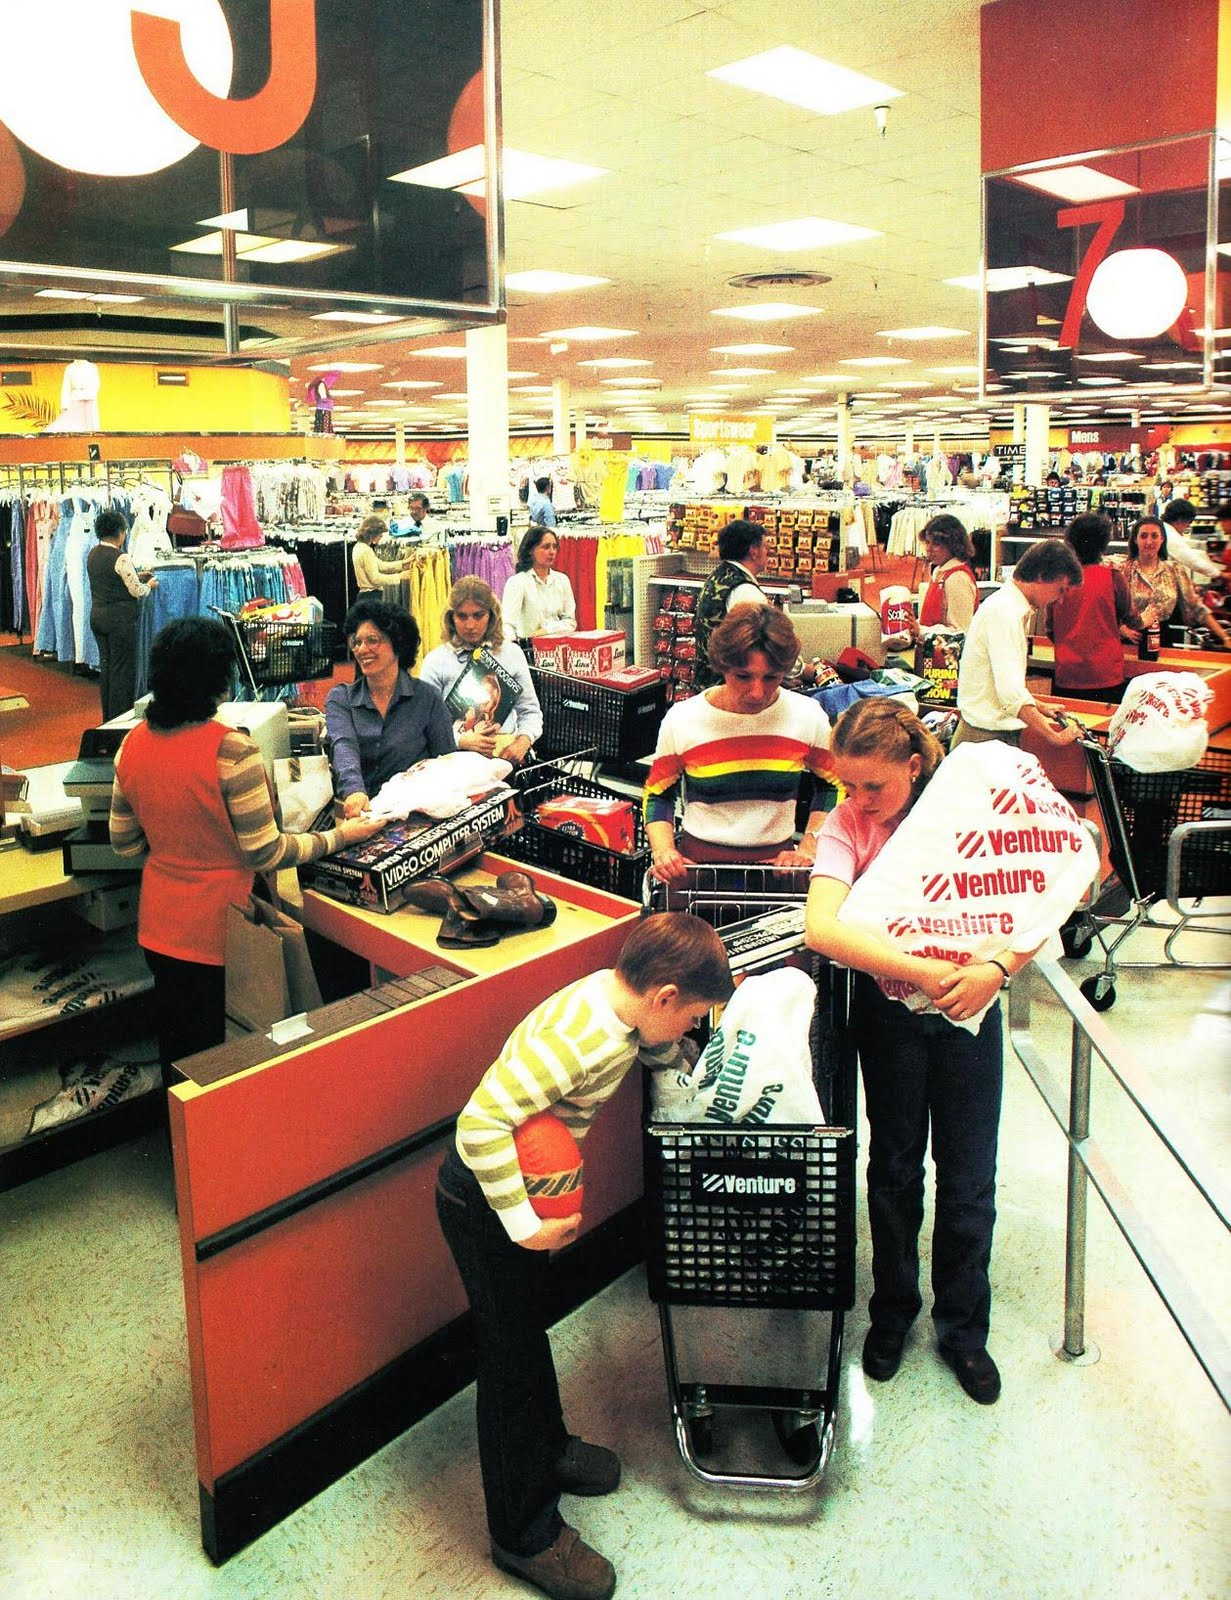 Defunct Department Stores: Pleasant Family Shopping: Save At Venture...Save With Style